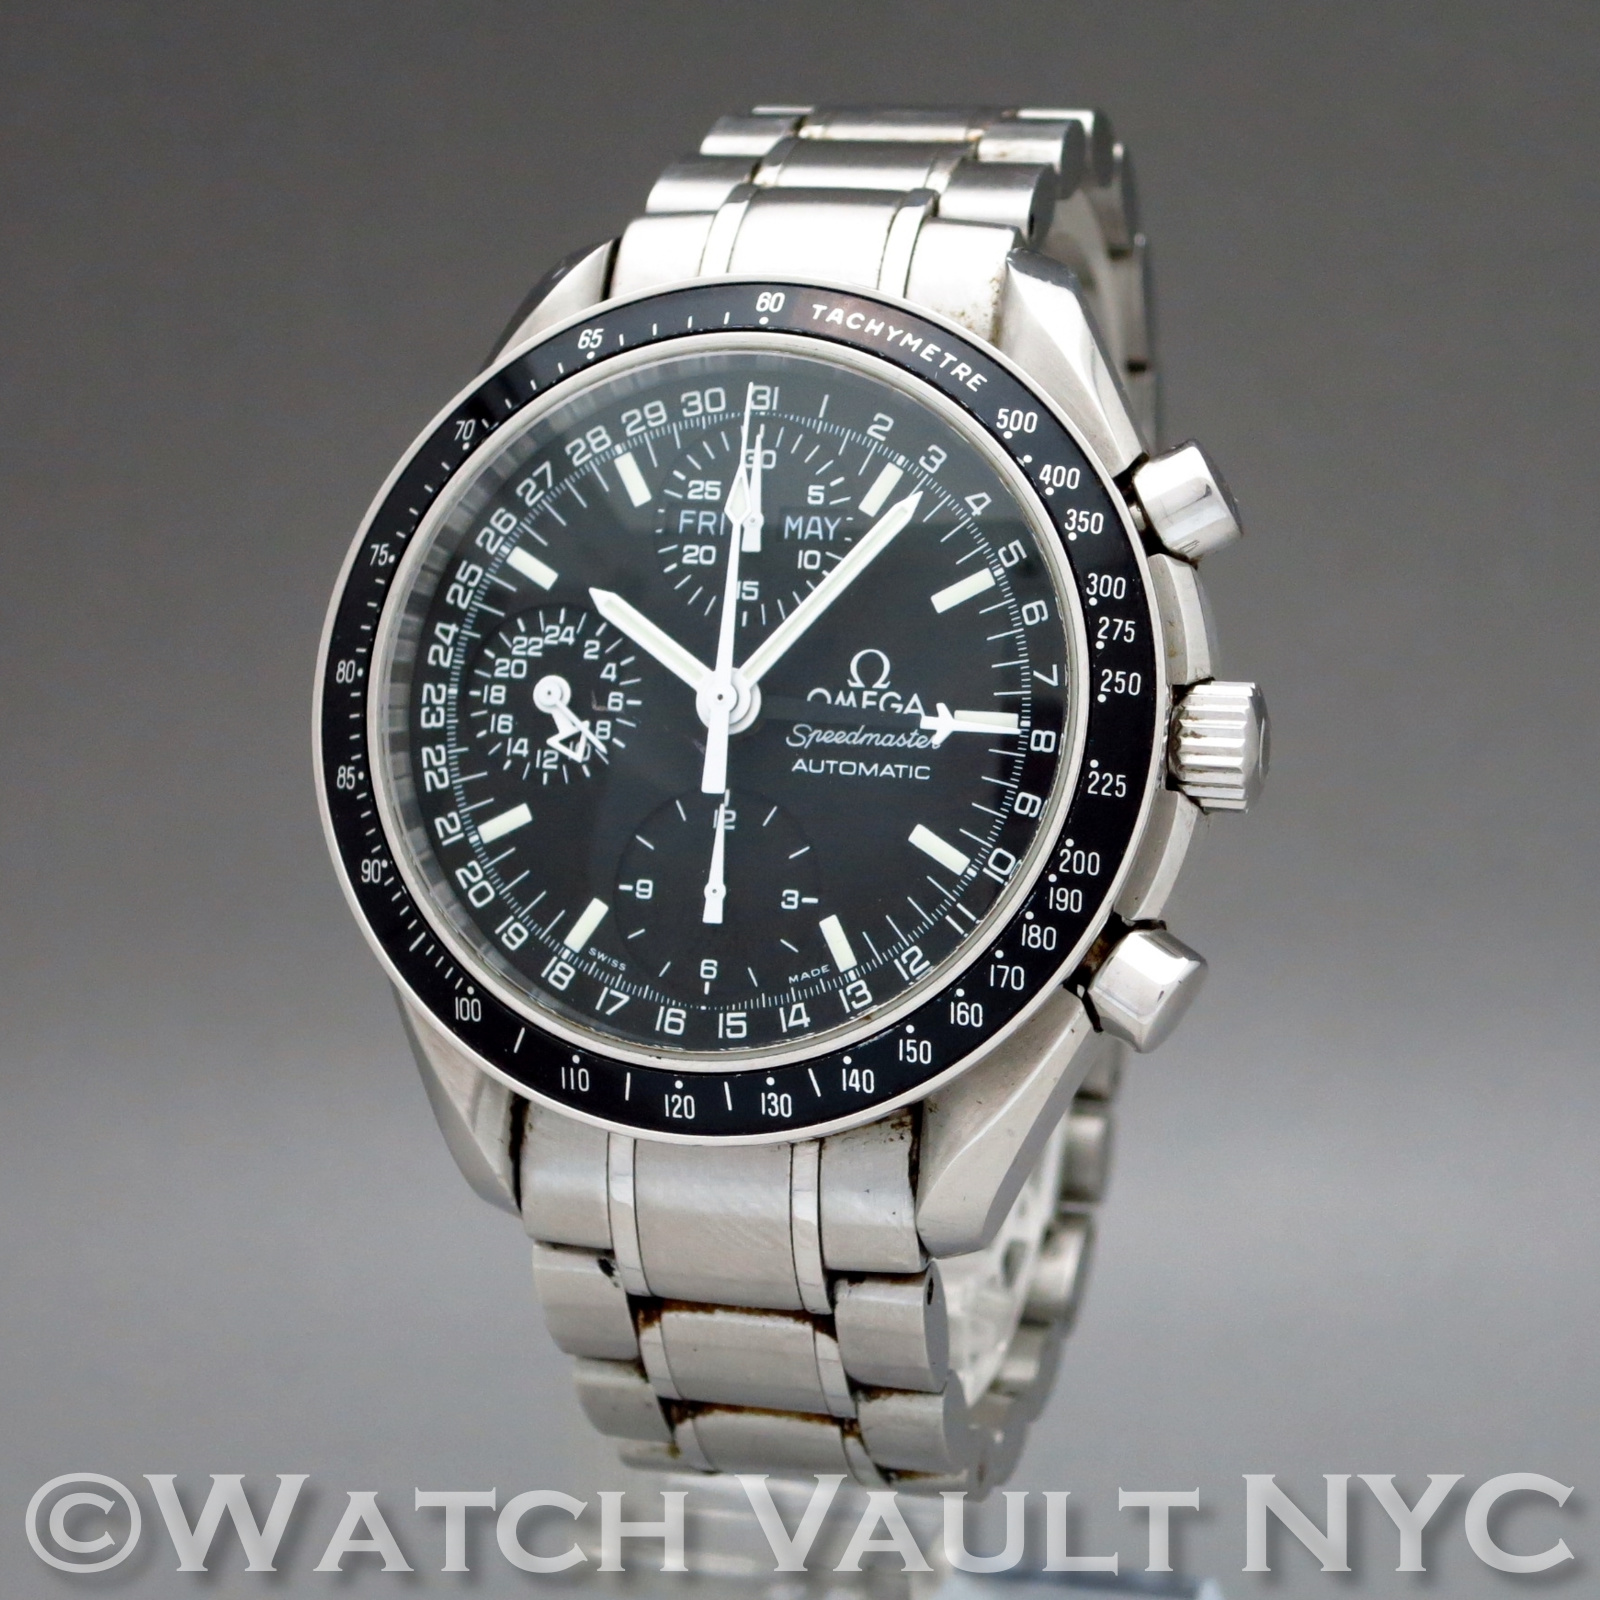 omega speedmaster day date mark 40 Get discounted omega speedmaster watch prices and free shipping today speedmaster mark ii co-axial chronograph stay up to date on great deals.